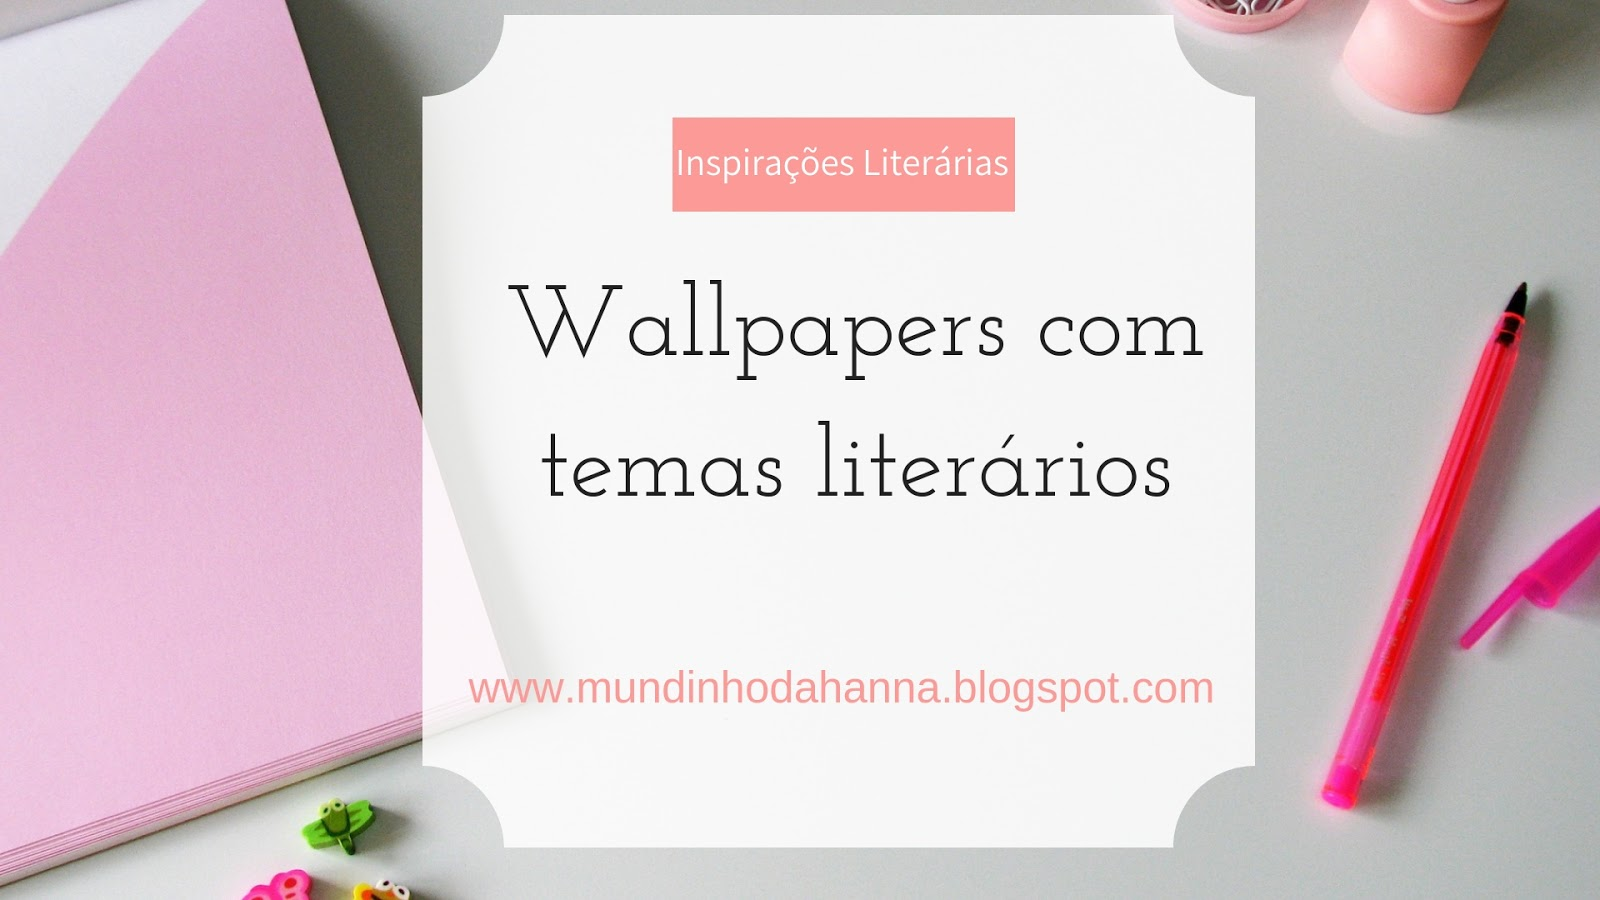 Wallpapers com temas literários